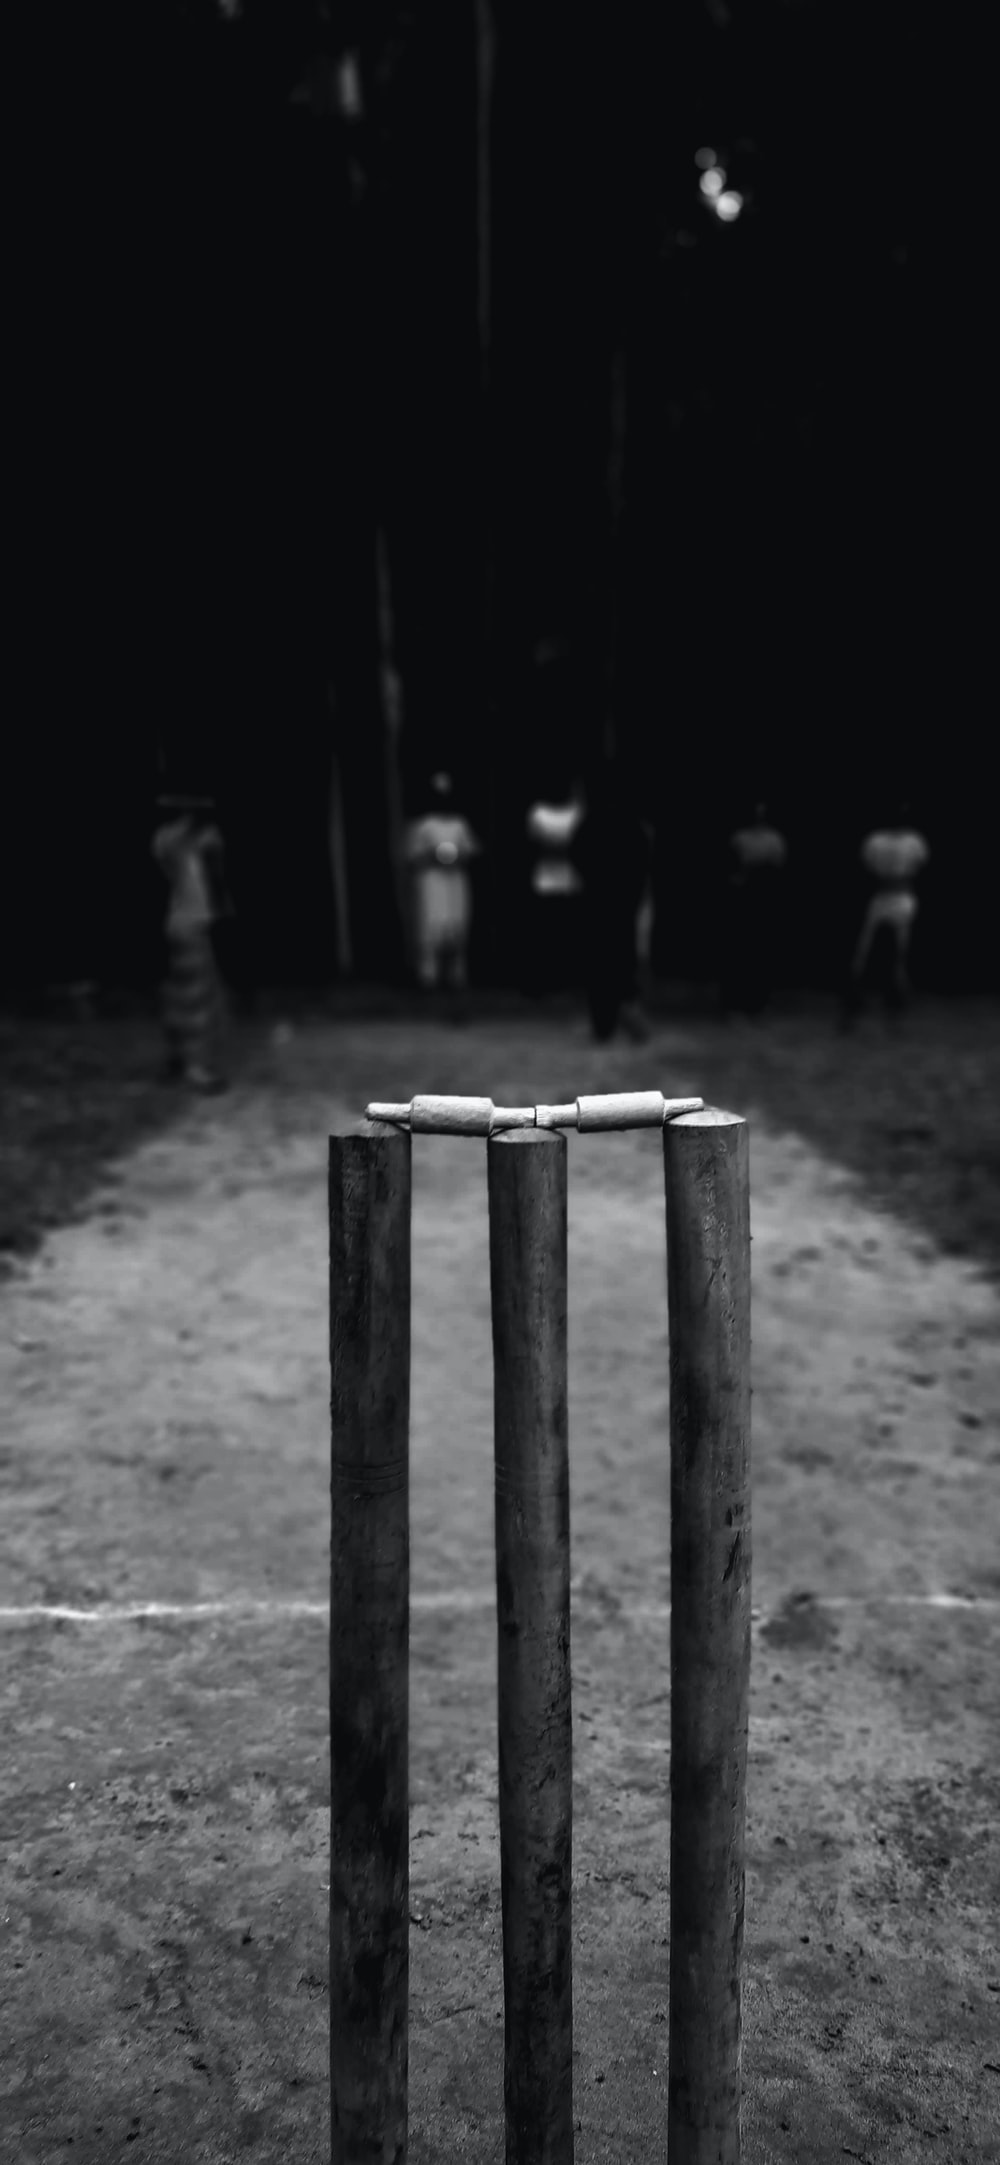 grayscale photo of wooden poles